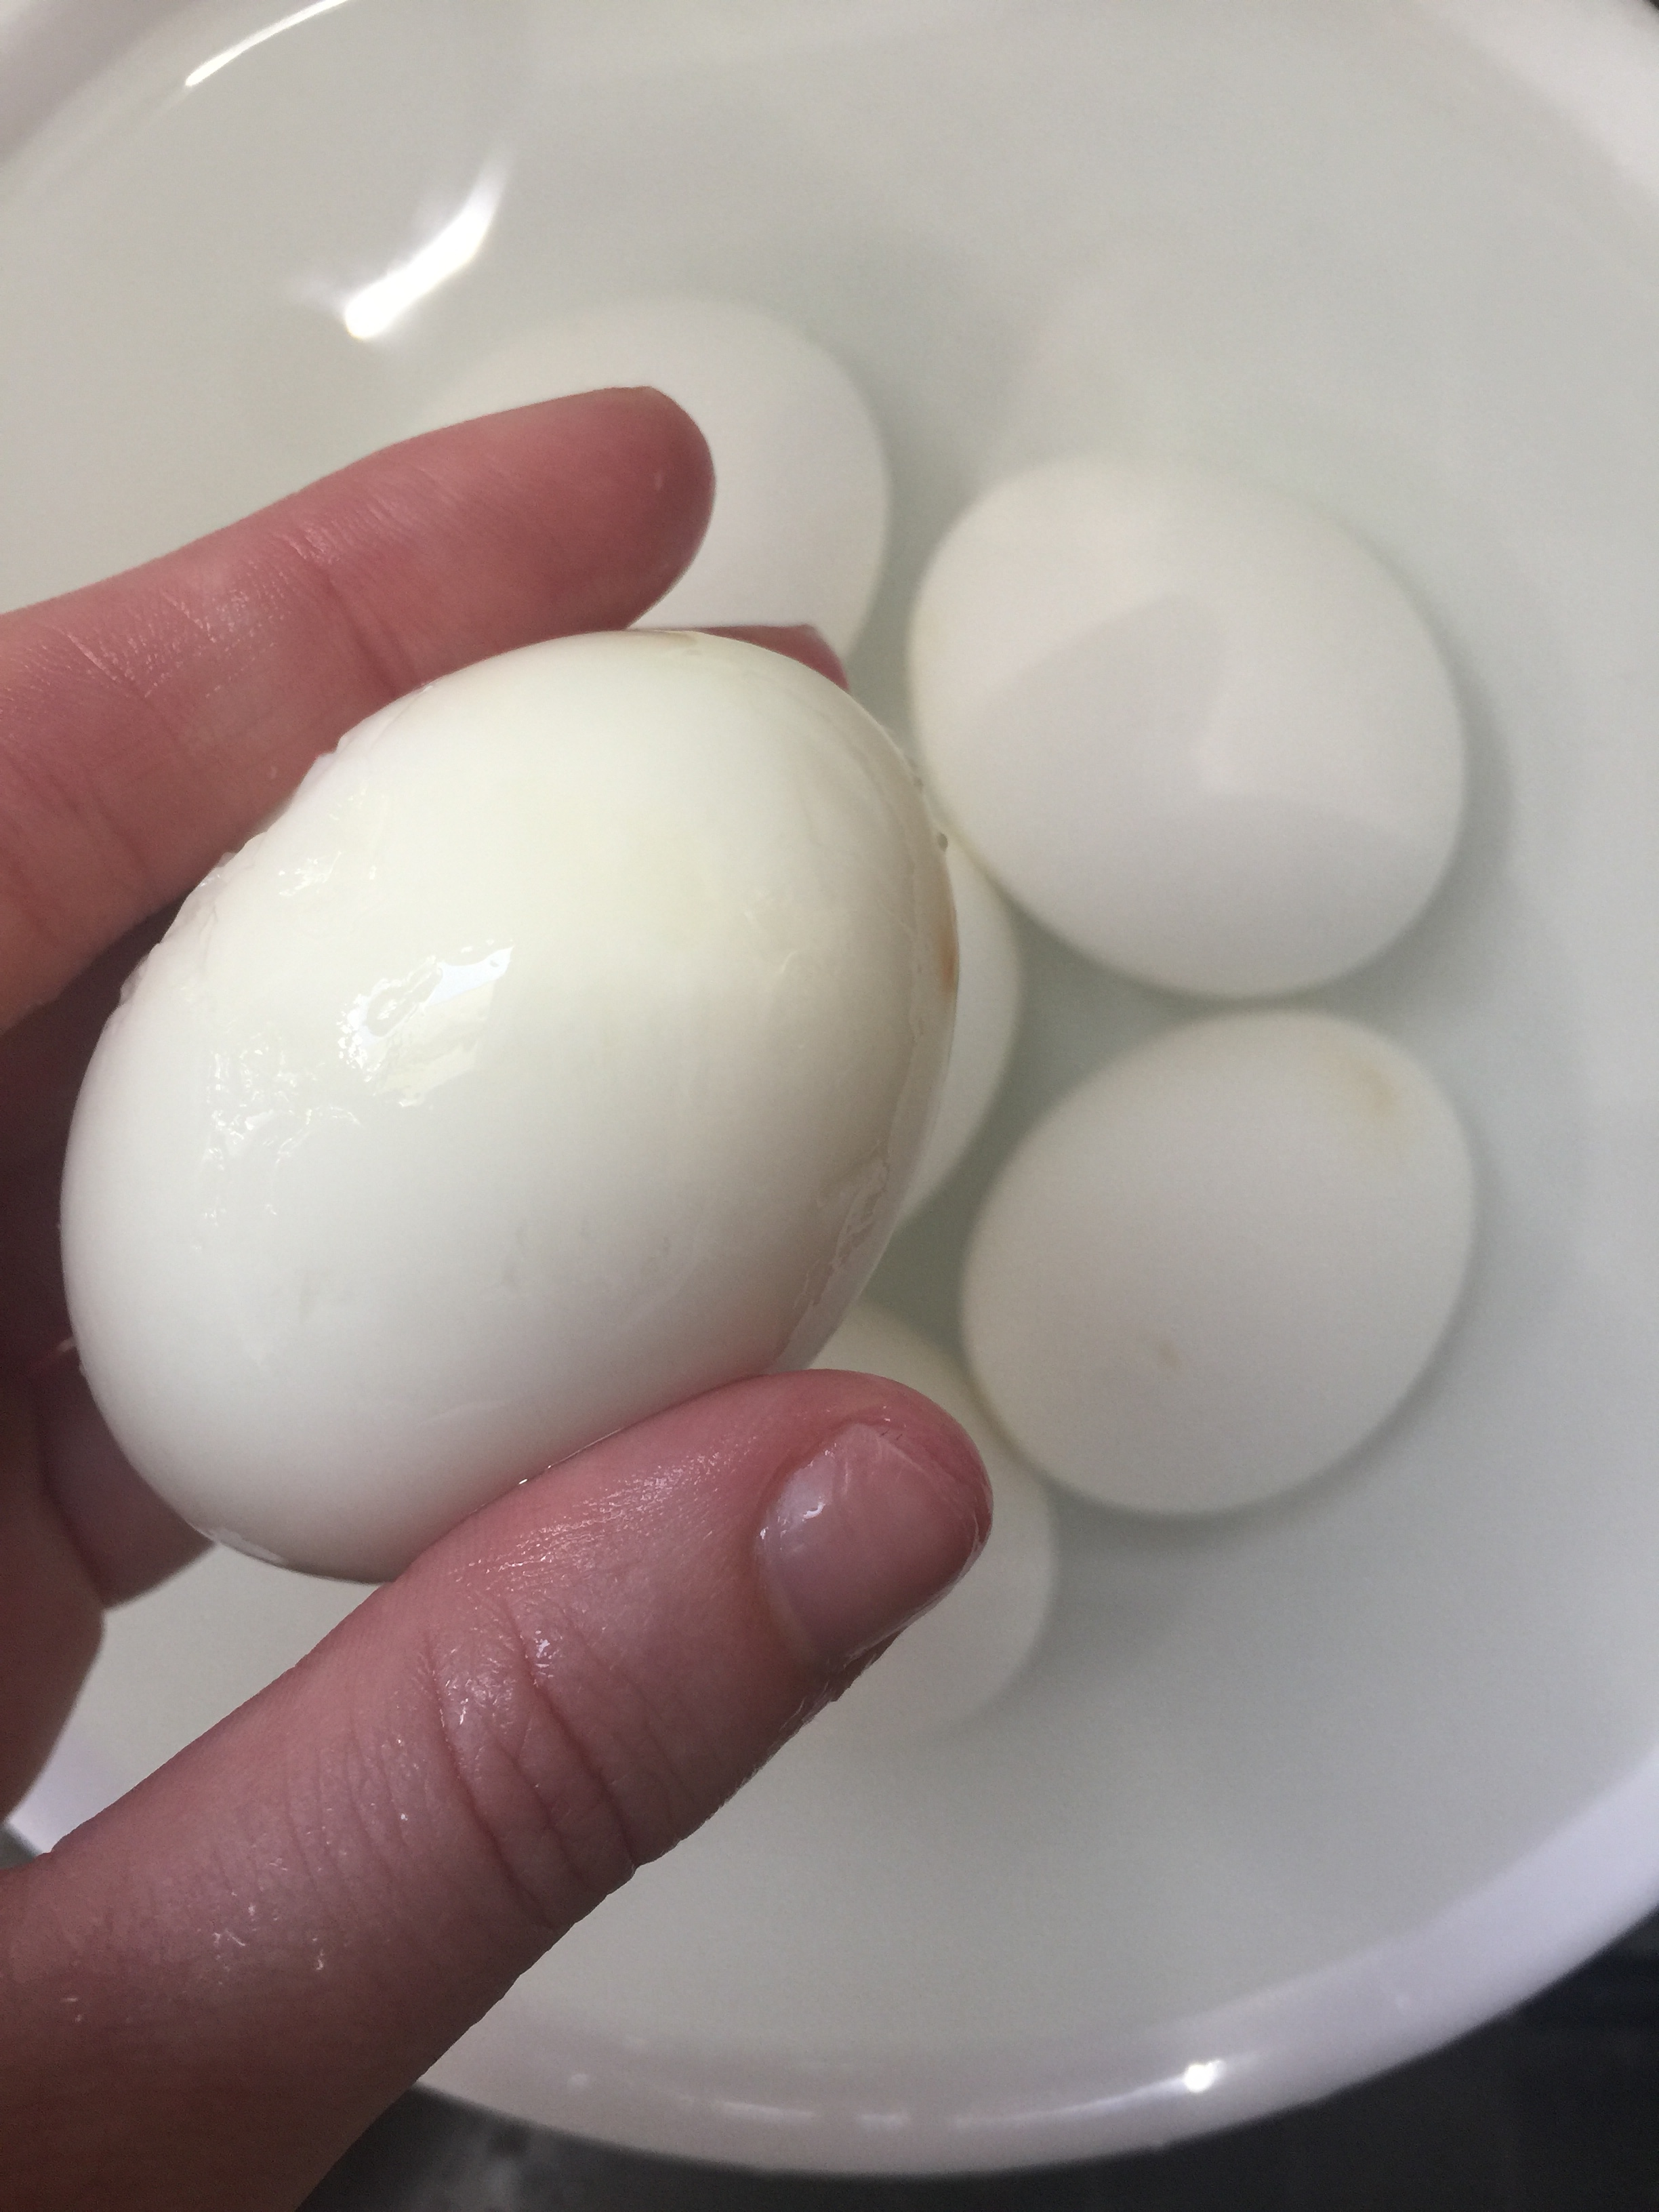 Simple steps on how to hard boil eggs in the oven